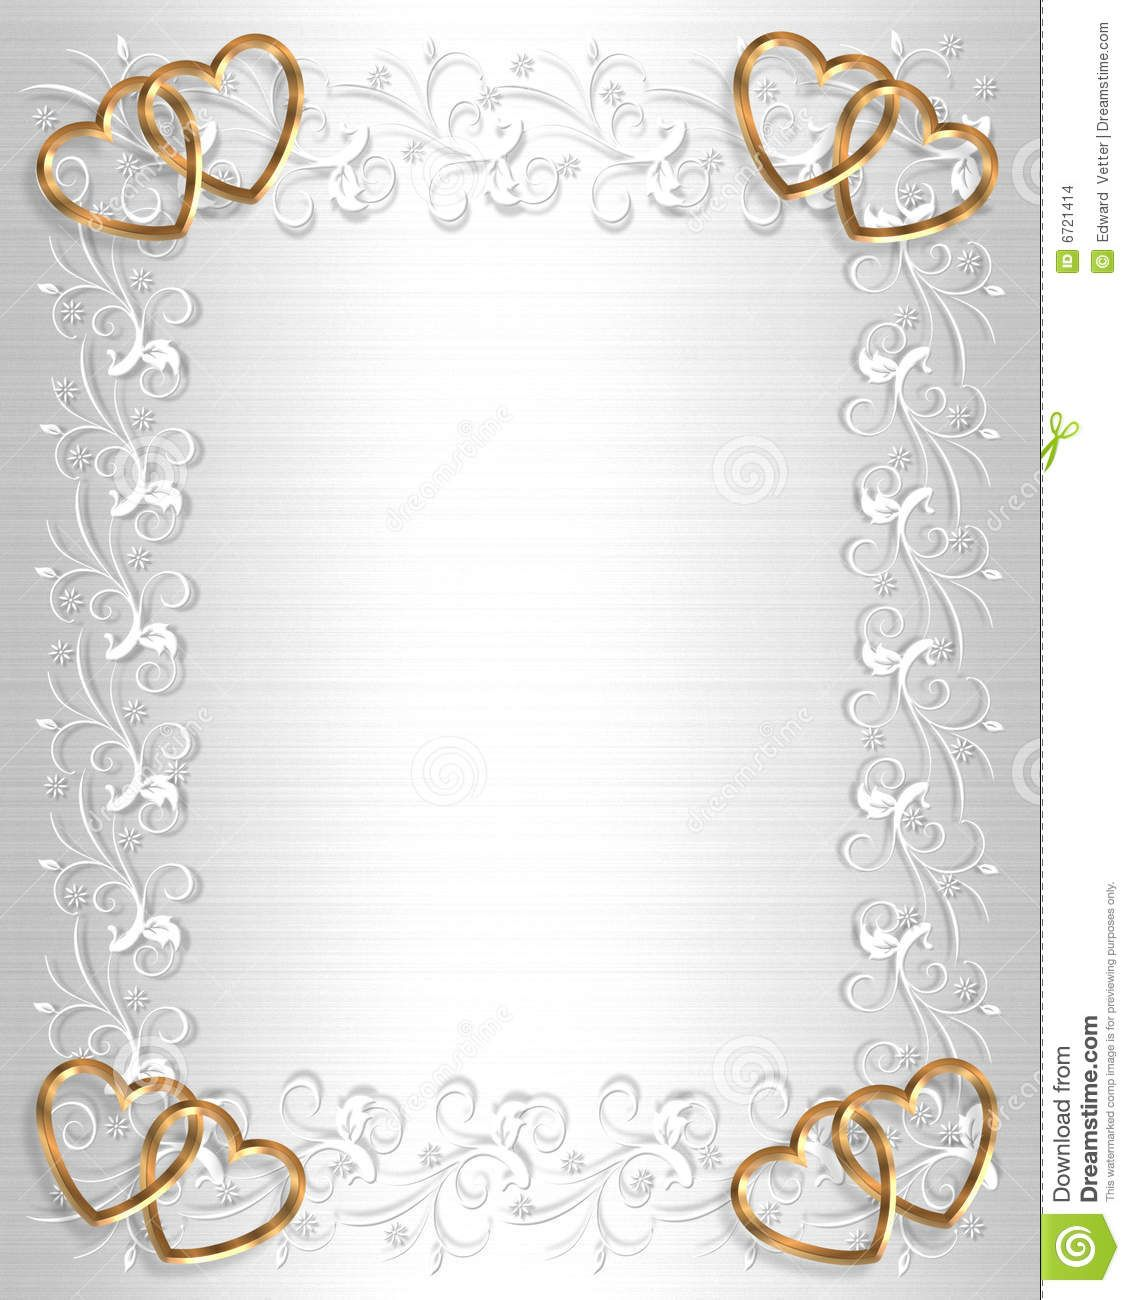 Angel border stationaray background border or frame for Wedding invitation page borders free download